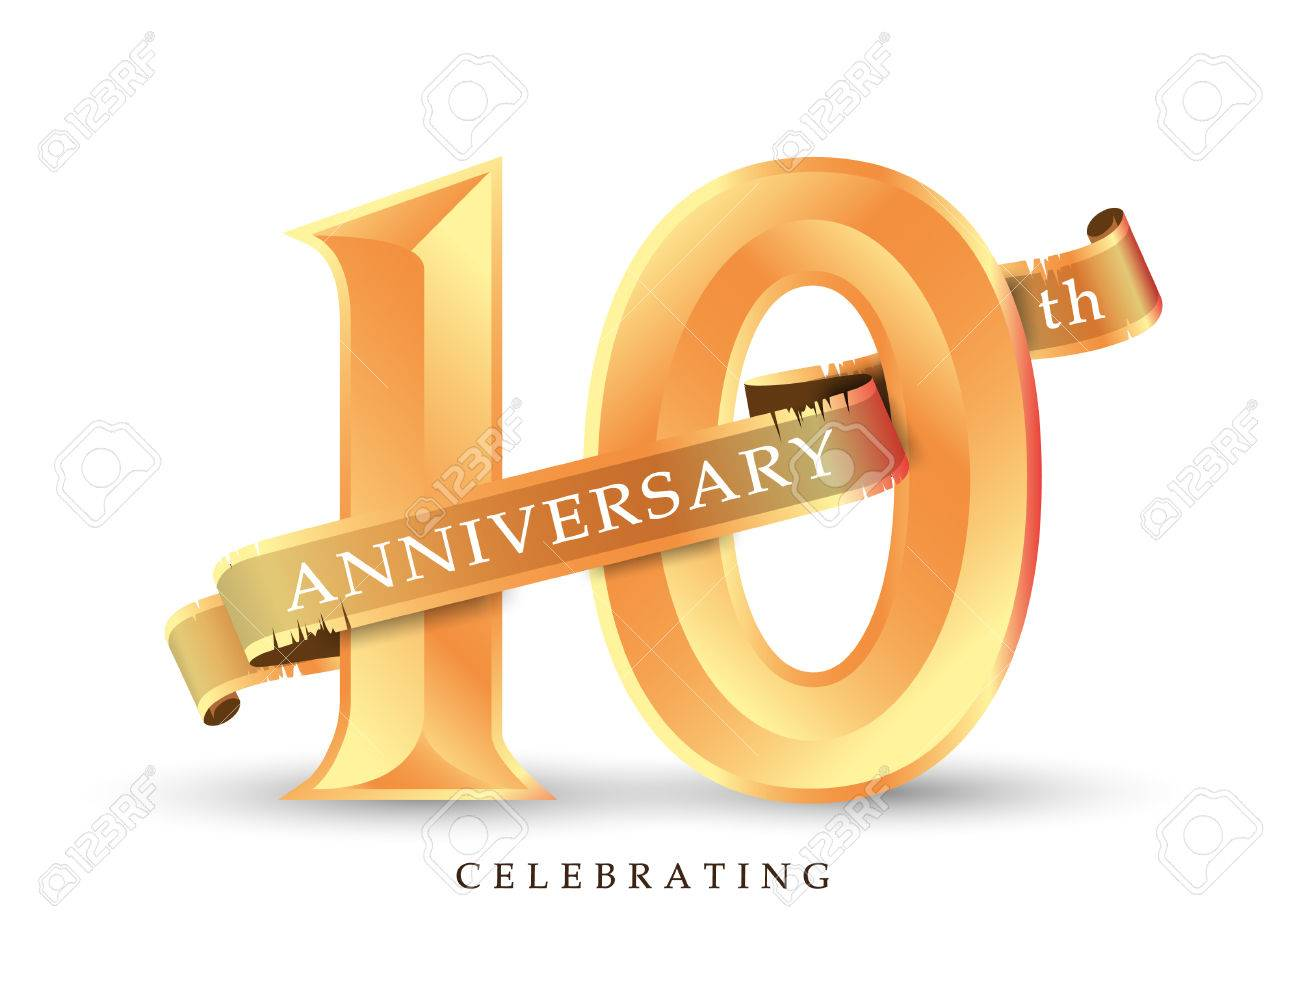 Template Number 10th Anniversary Celebrating Classic Logo Vector